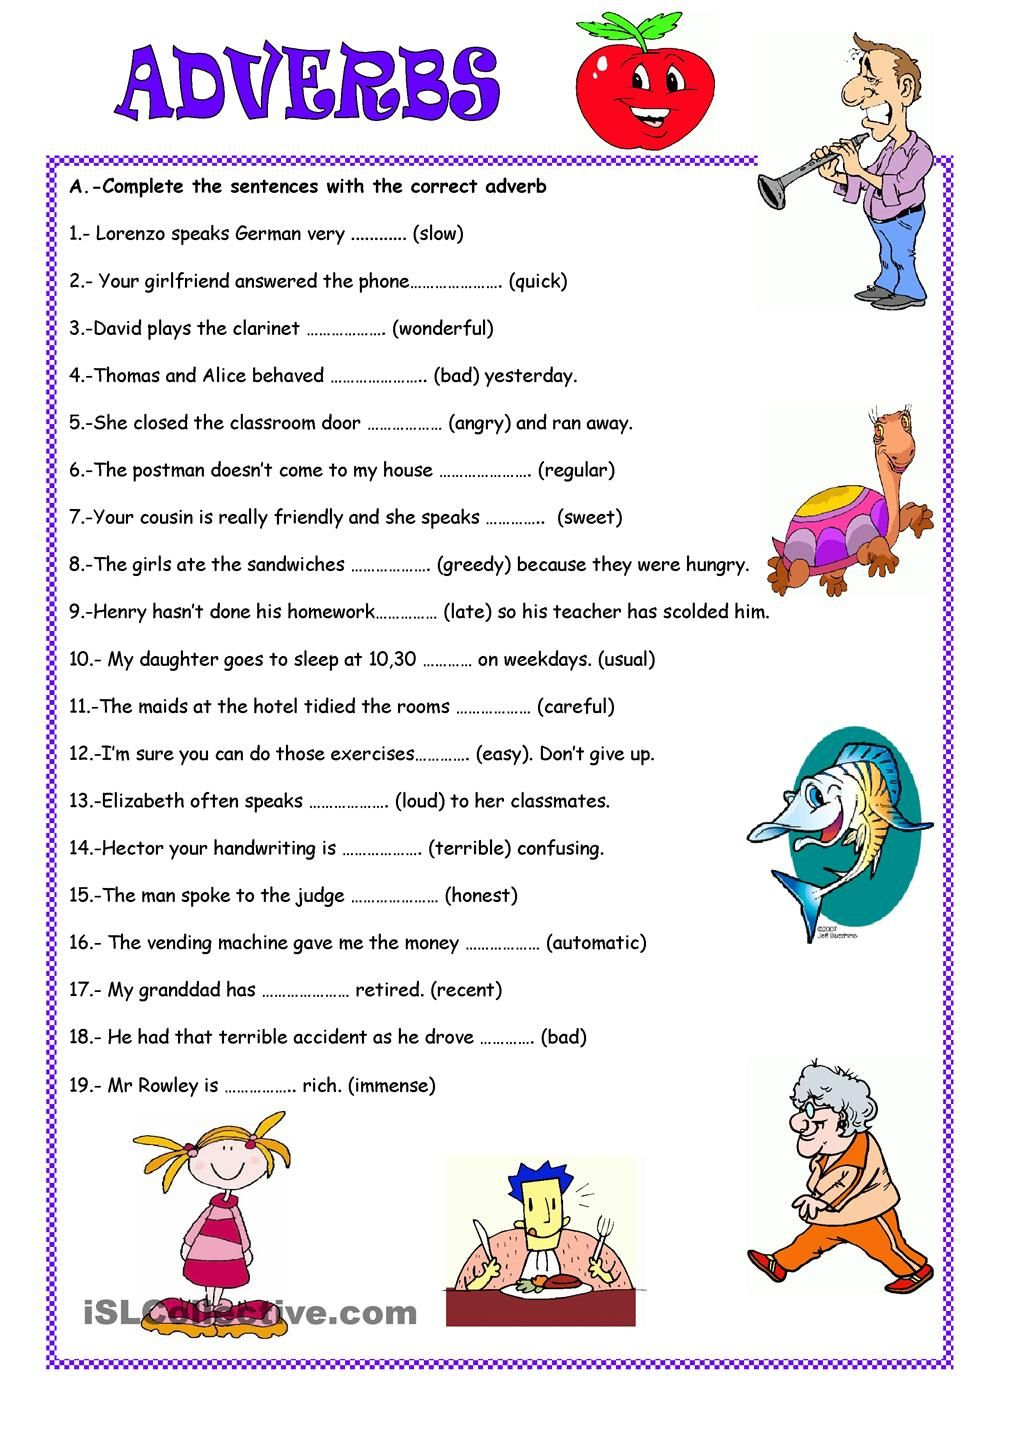 Worksheet Adverb Worksheets worksheet adverb sentences for kids noconformity free 1000 images about adverbs on pinterest anchor charts anchors and parts